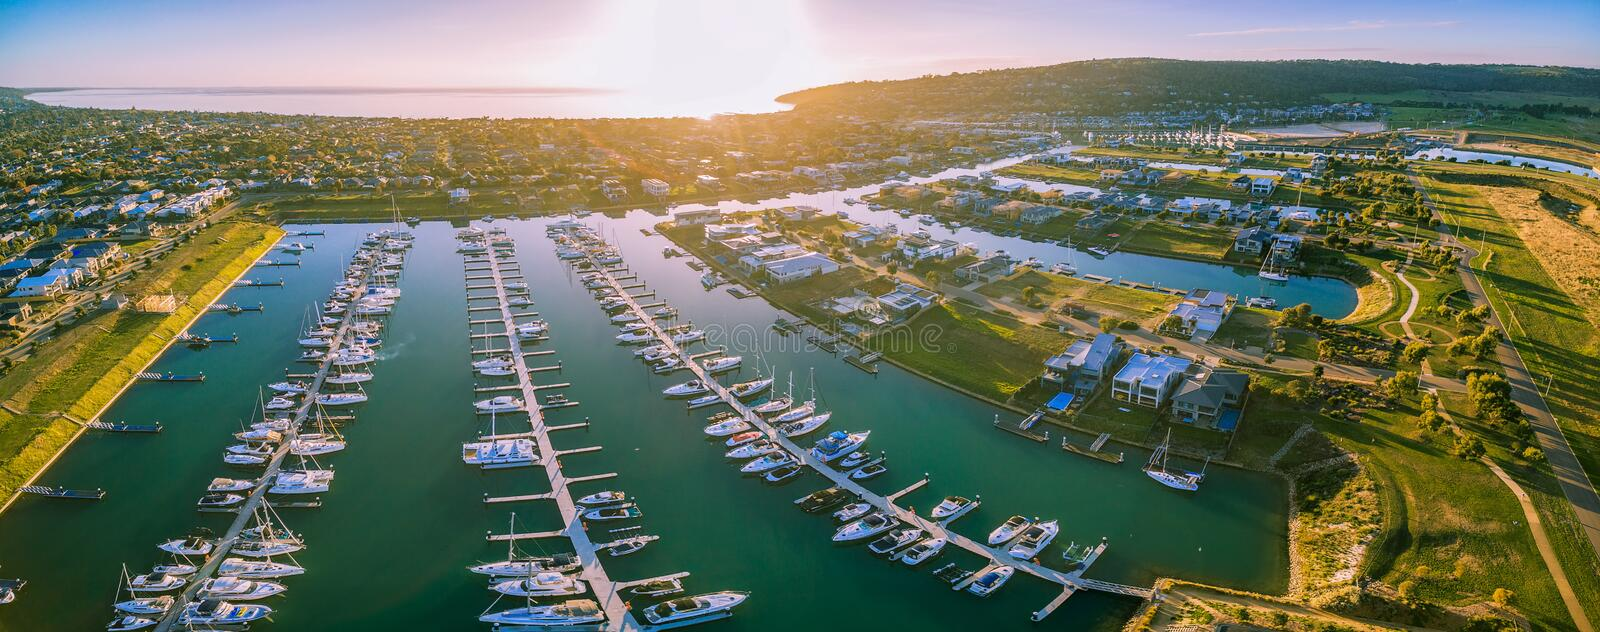 Aerial panorama of Safety beach suburb and marina with Port Phil. Lip Bay as background. Melbourne Victoria, Australia stock photos